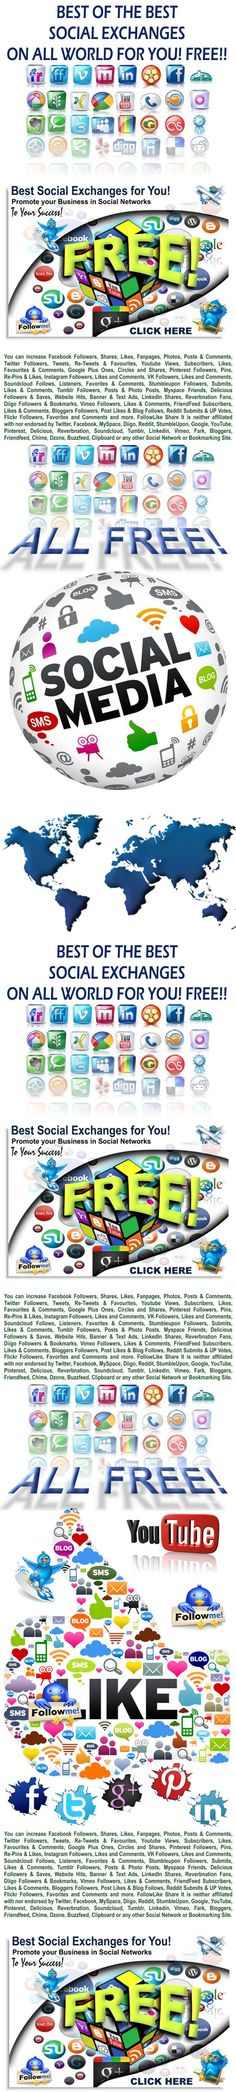 Social Exchanges * BEST OF THE BEST HERE! Only the best and trusted Social Exchanges. Quality and Security. * ALL FREE! Visit! > http://networkerhot.blogspot.com